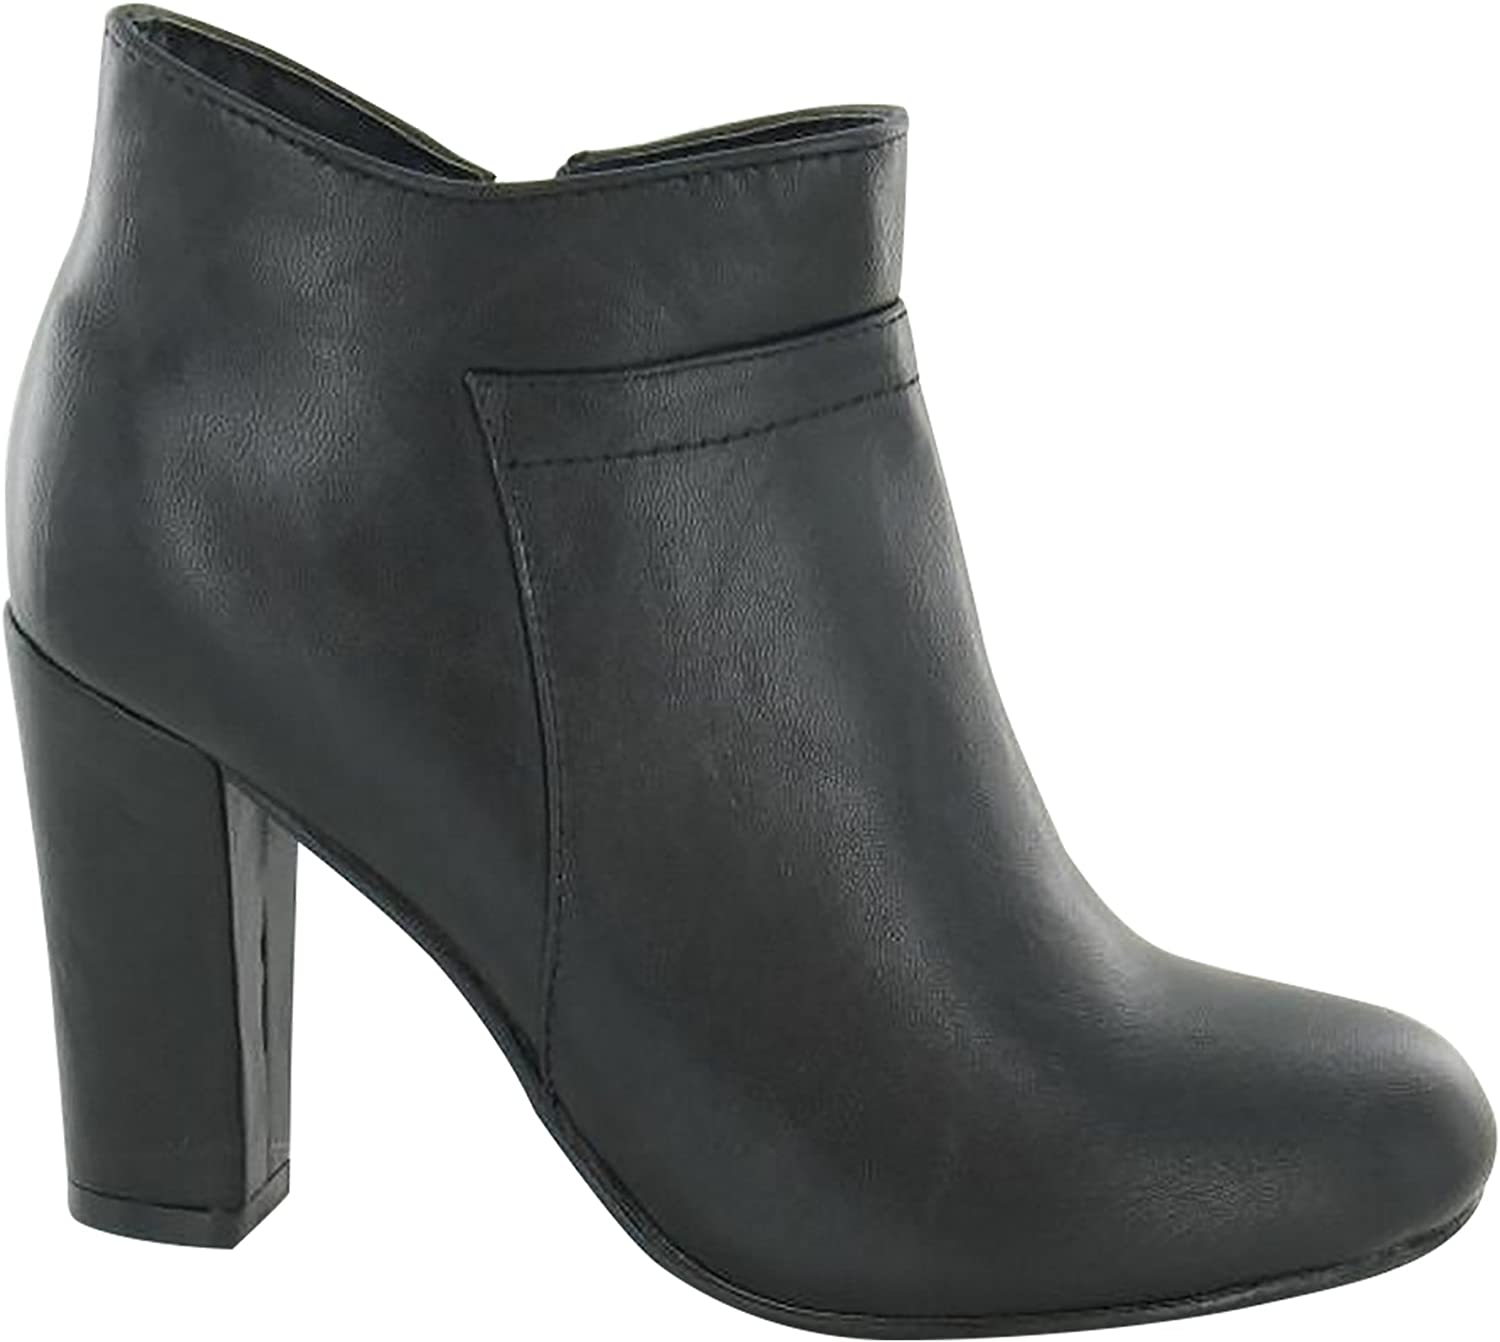 Spot On Womens Ladies Zip Up Heeled Ankle Boots